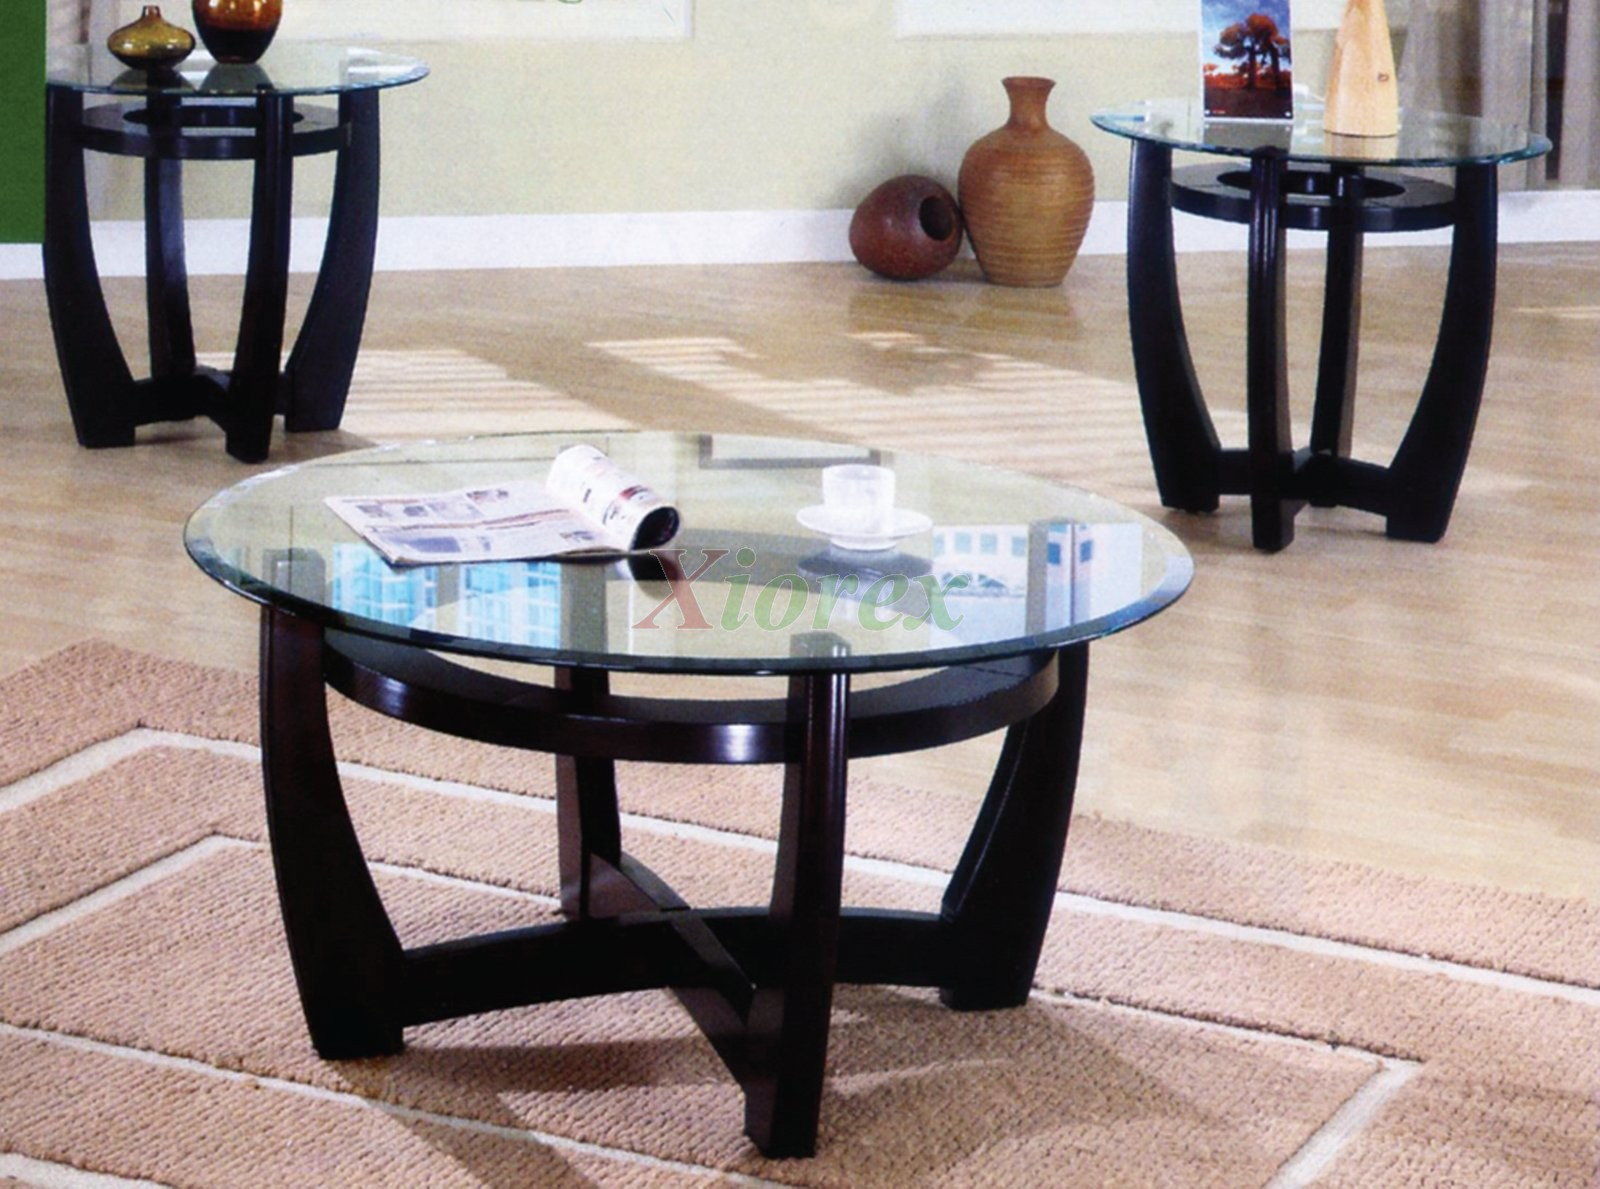 Ursa 3 piece Living Room Table Set | Xiorex & Columba 3 Piece Coffee Table Set with Sofa Console Table | Xiorex